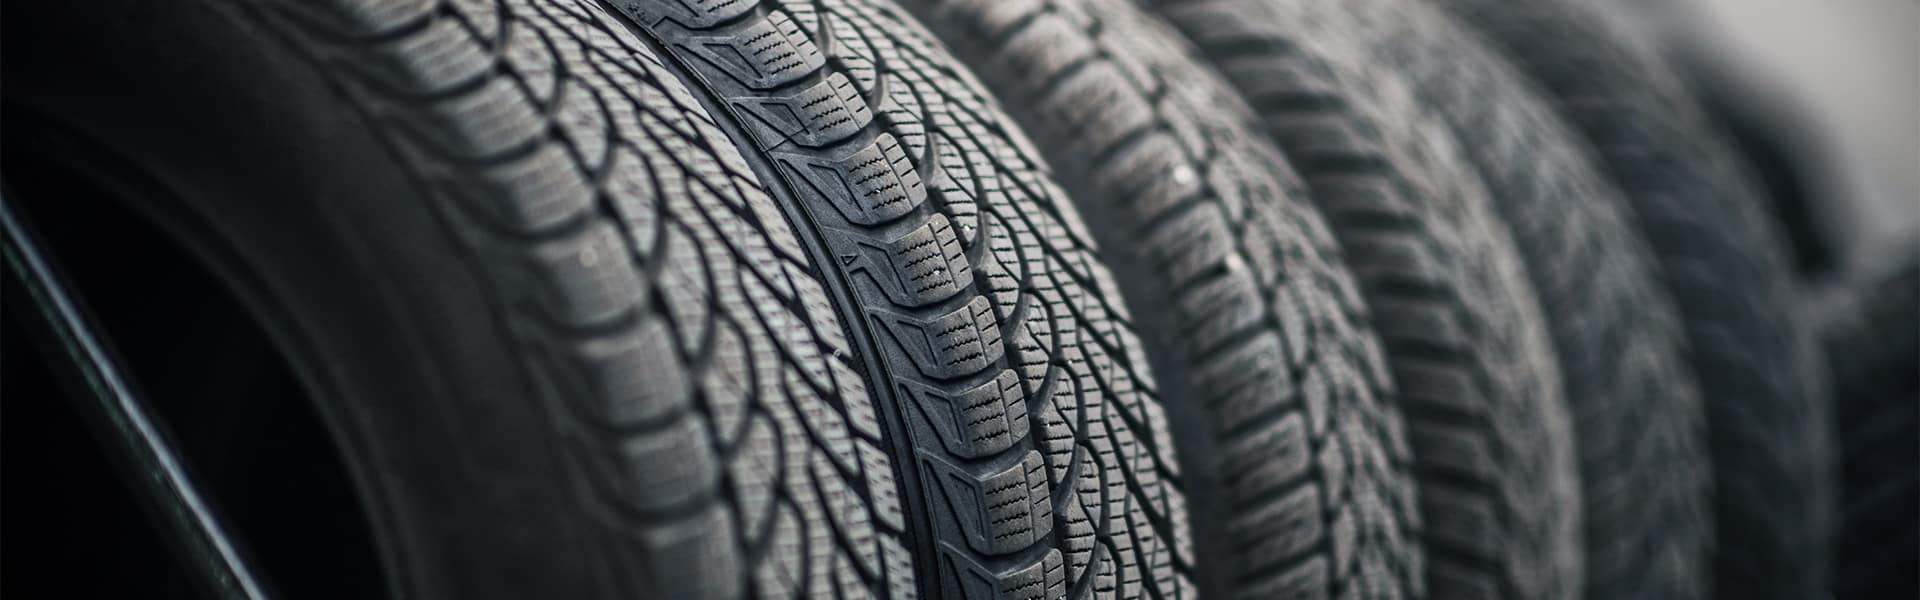 How to change a tire step-by-step guide at Halterman's Toyota in East Stroudsburg | Rack of Tires